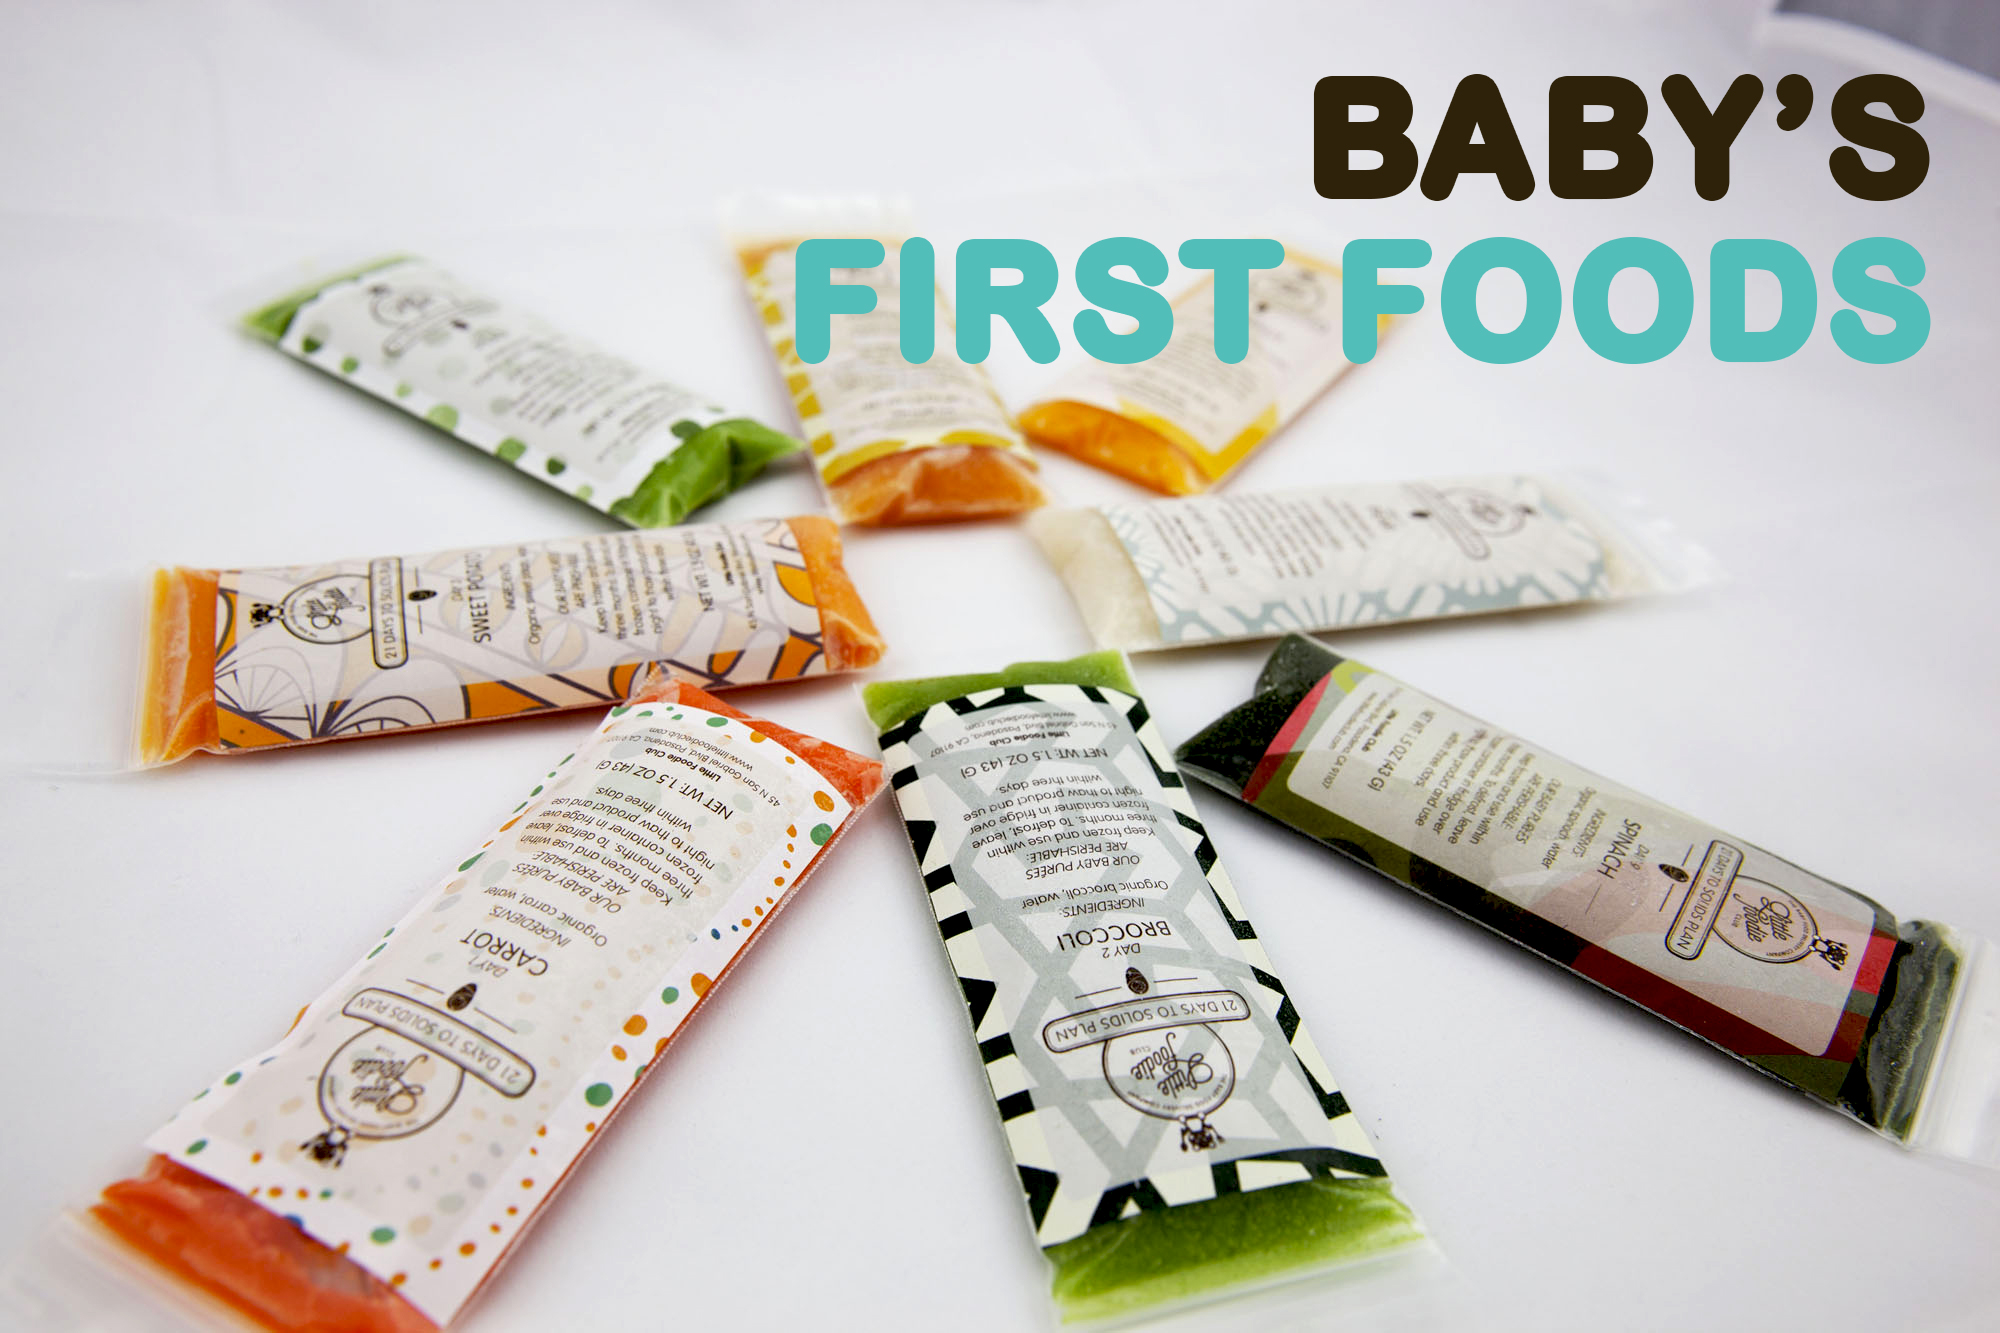 baby's first foods.jpg